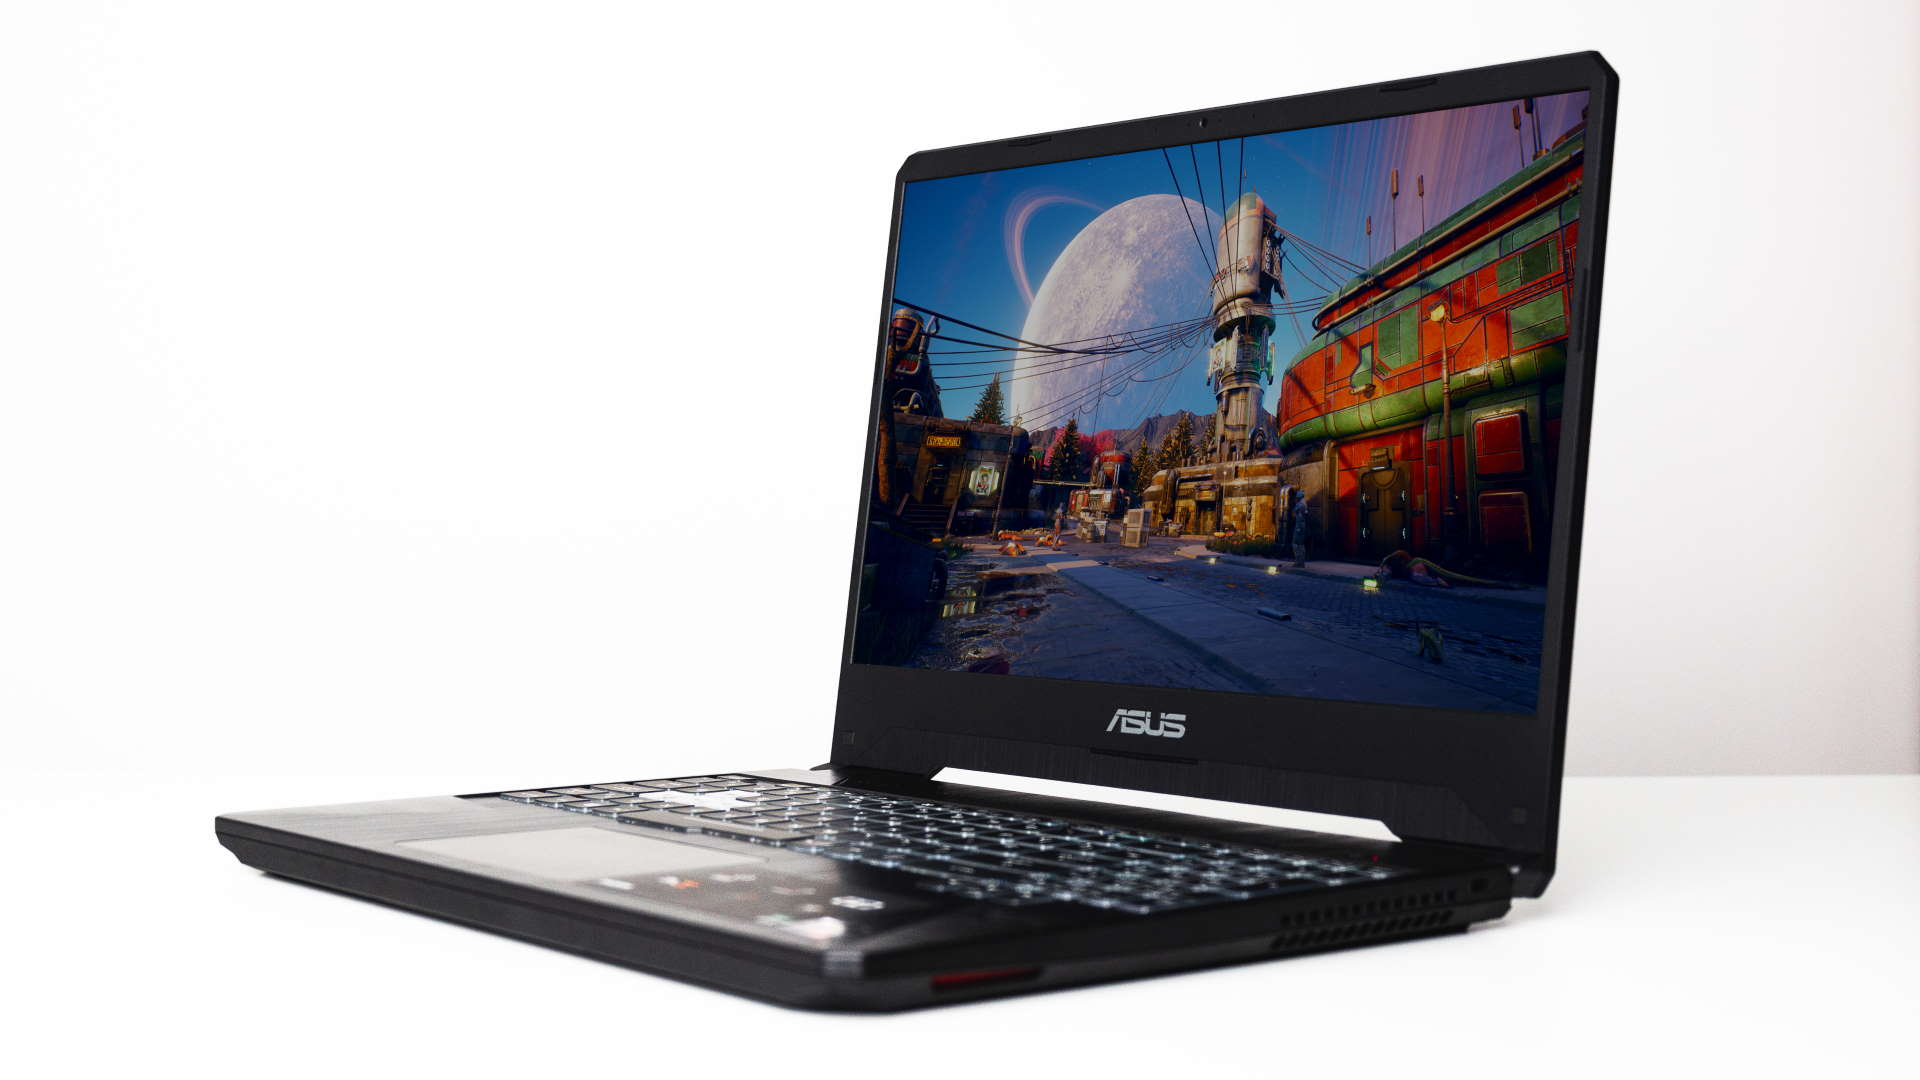 Asus Tuf Fx505dt Review A Genuinely Affordable Gaming Laptop Pcgamesn